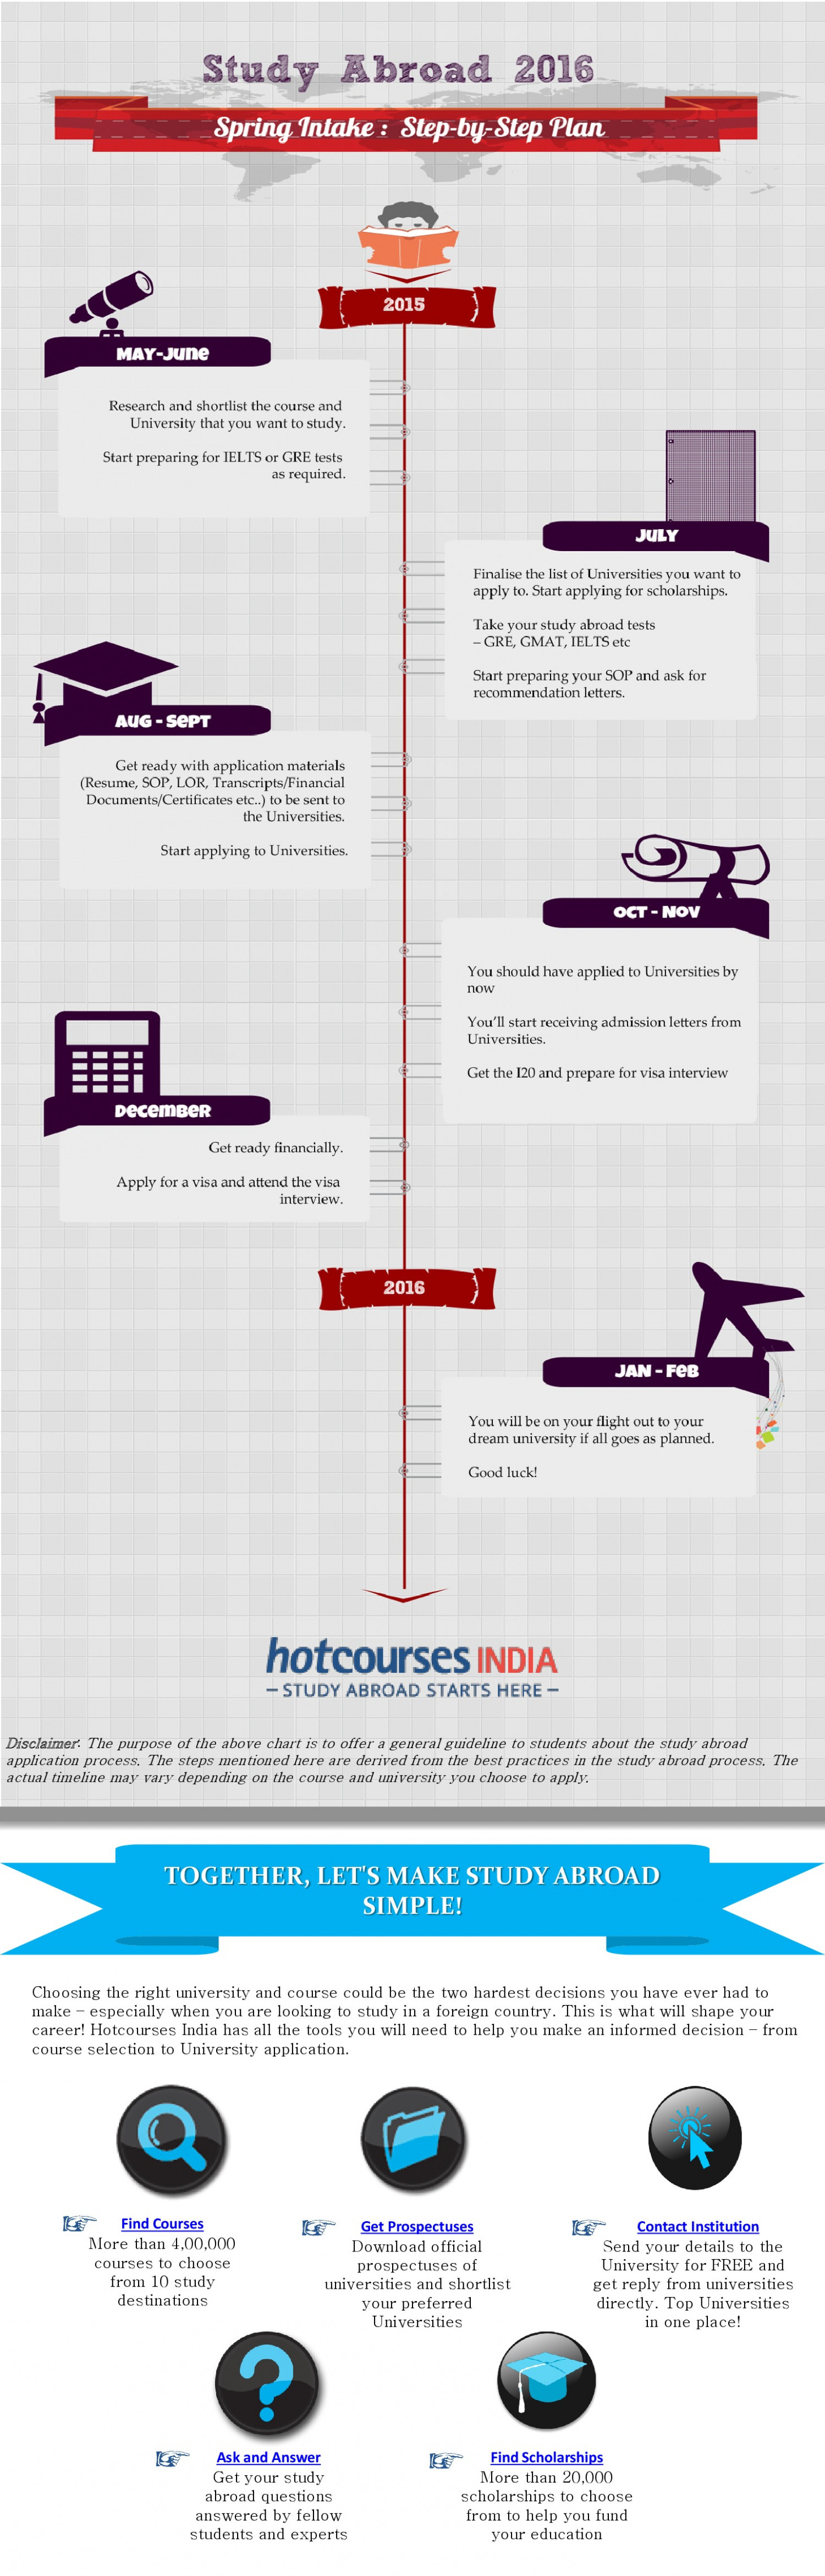 Step by step plan for Studying abroad - Spring intake 2016 Infographic